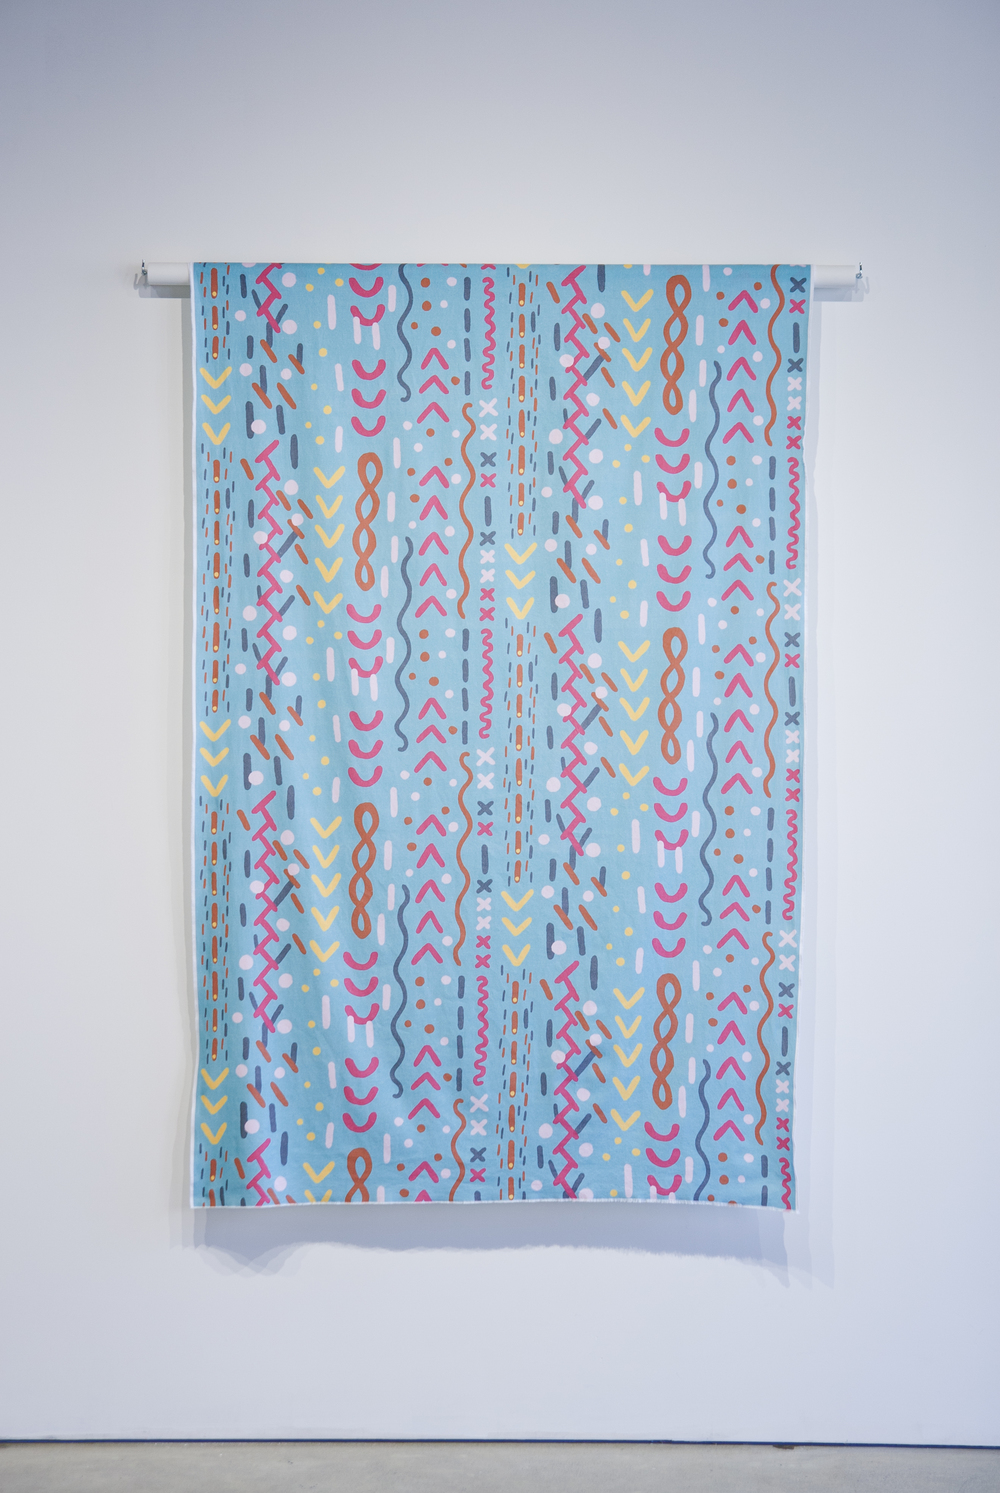 Stitches Fabric,  2015, mixed media, 183 x 122 x 5 cm (72 x 48 x 2 in) variable